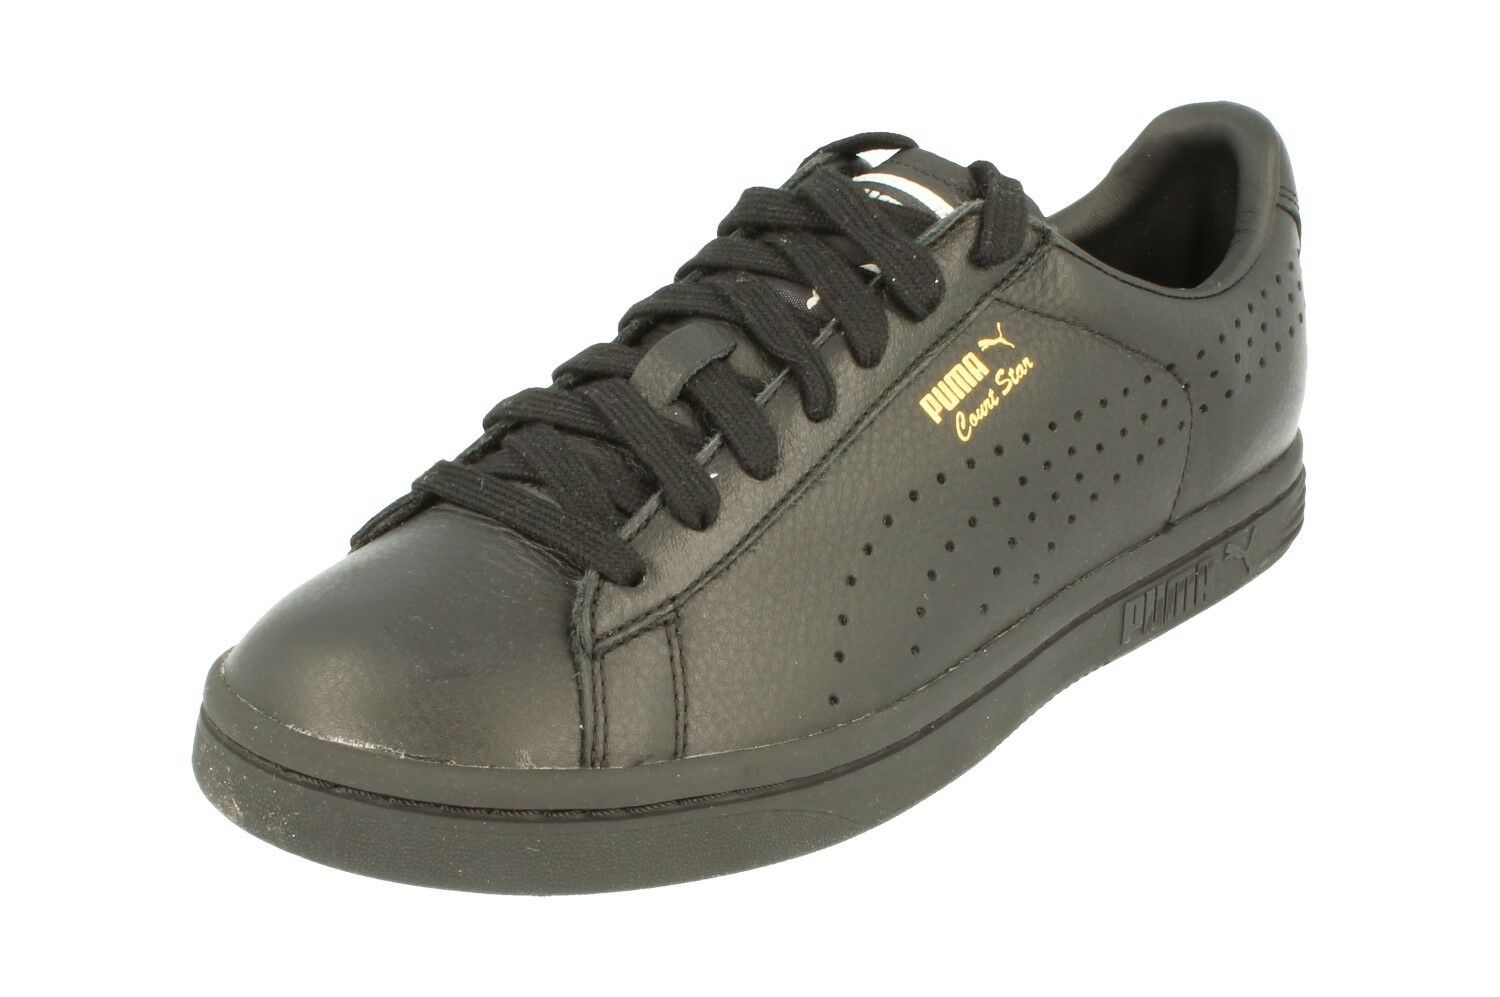 Puma Trainers Court Star NM Hommes Trainers Puma 357883 Baskets Chaussures 13 622516